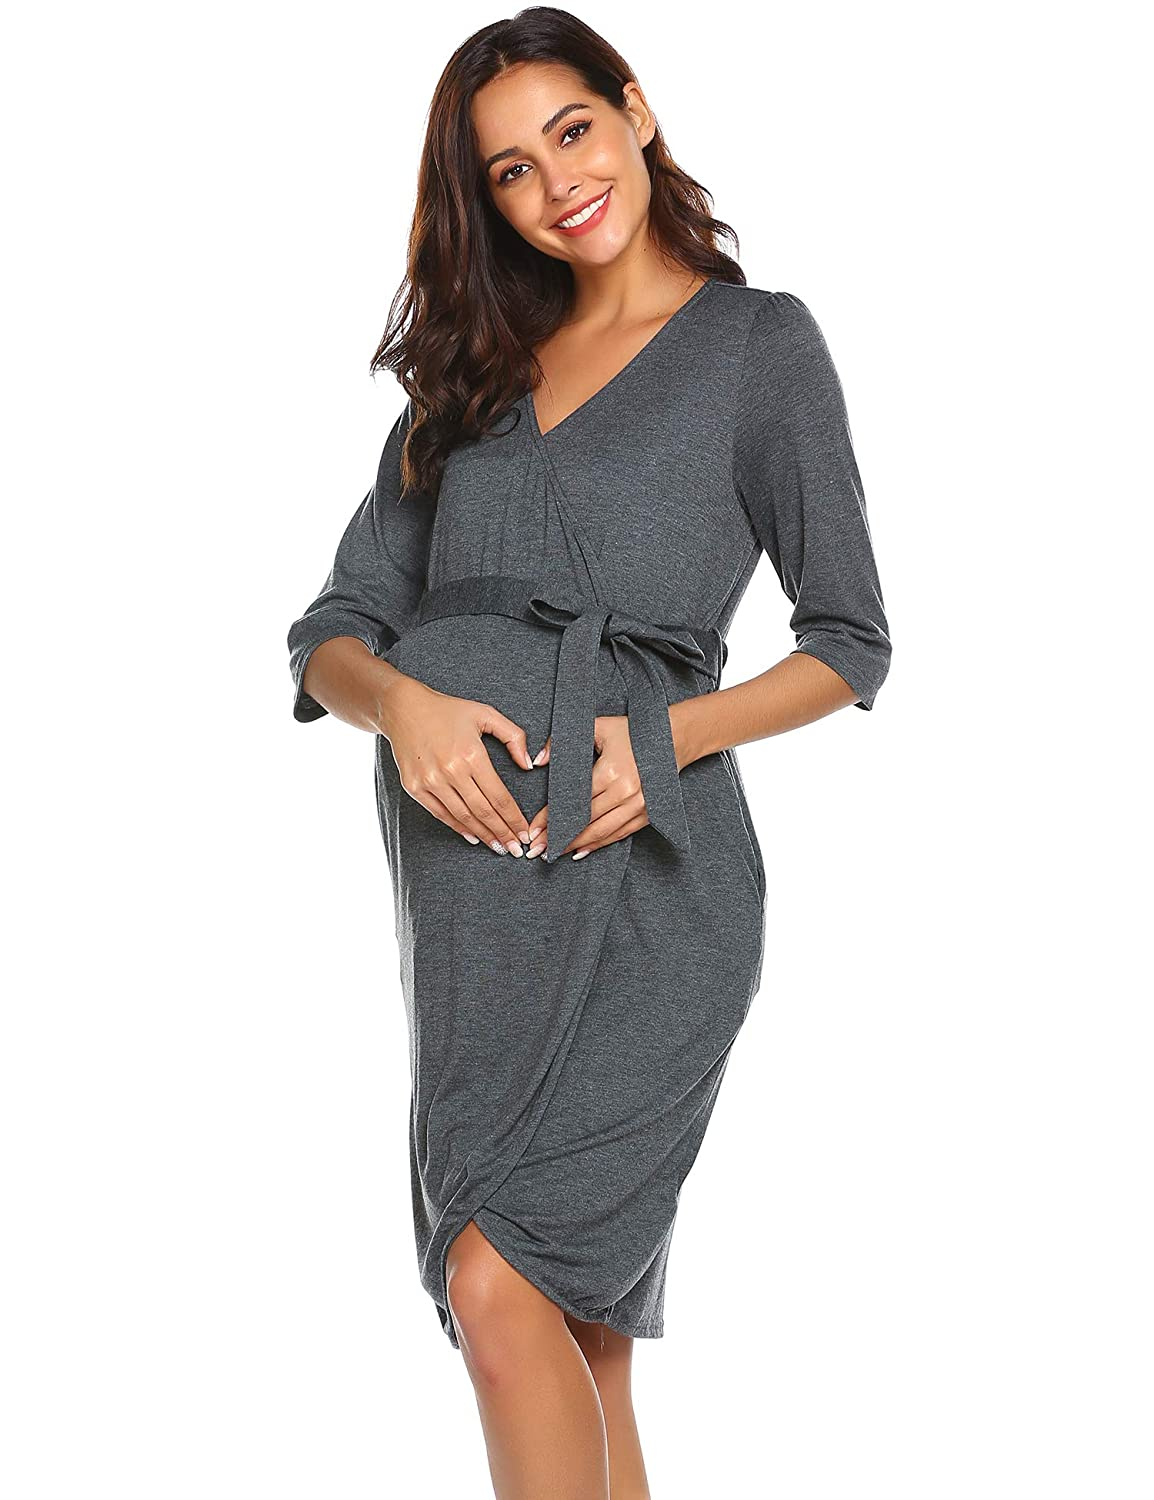 Ekouaer Maternity Nursing Robe Labor Gown Pregnancy Nightgown